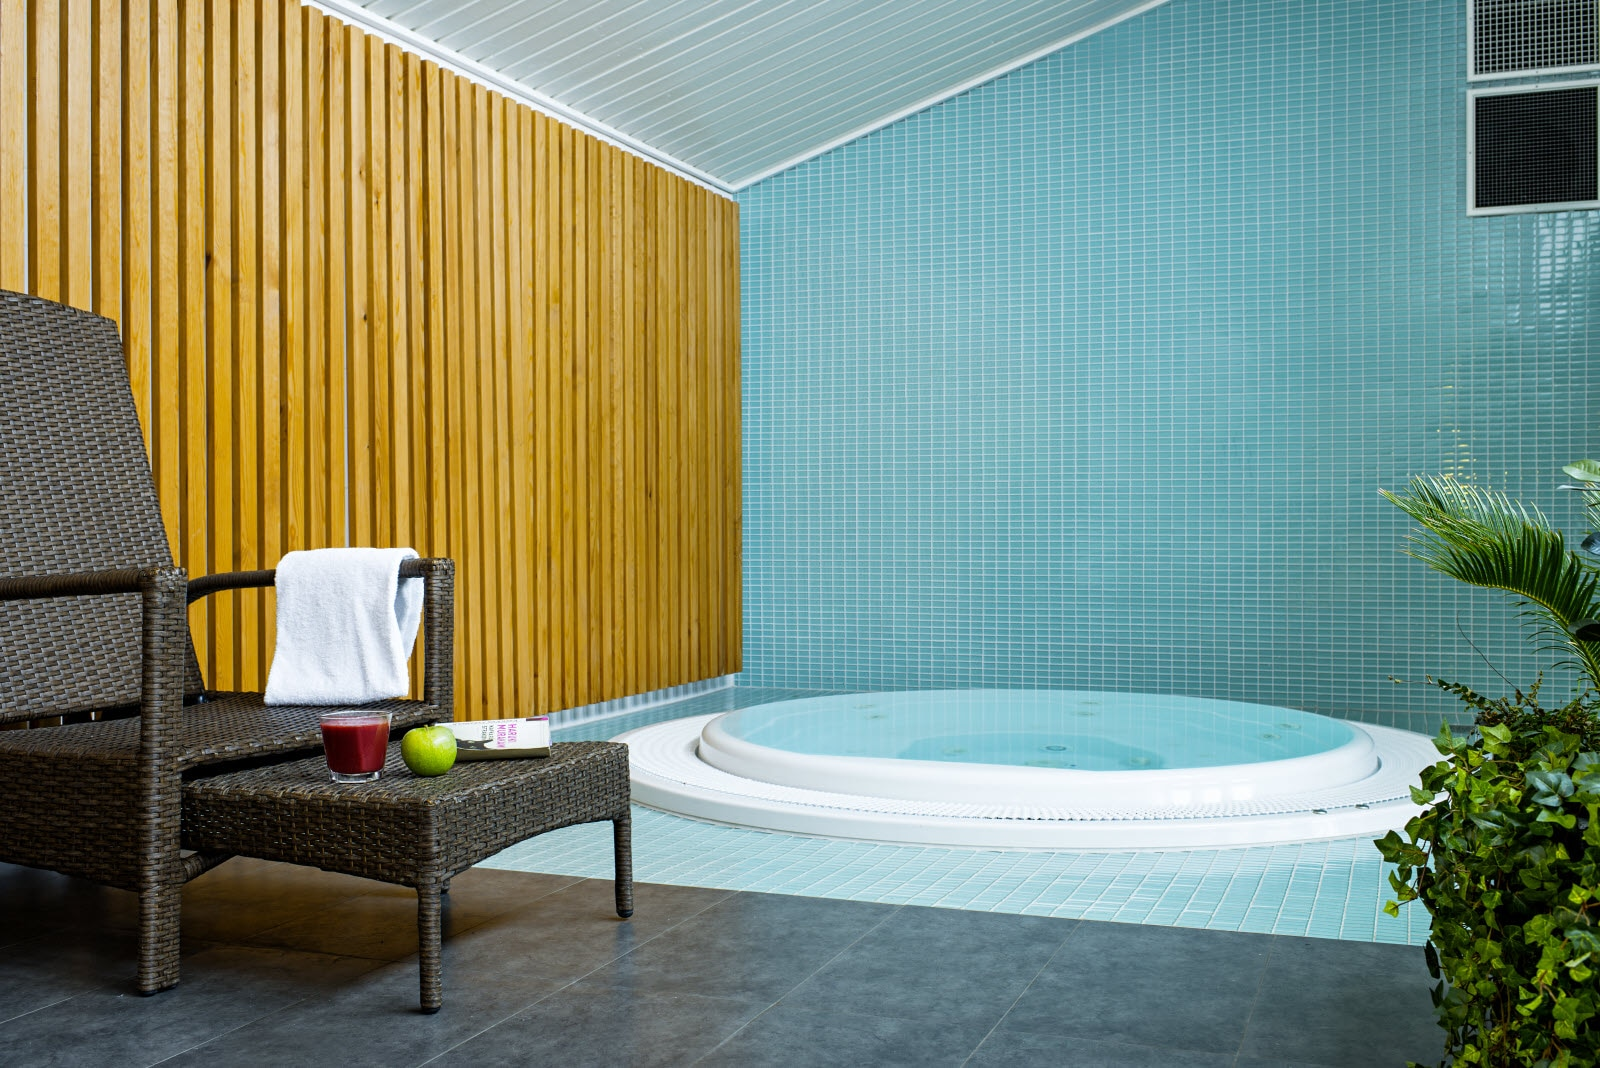 Scandic Grand Hotel, Grand Hotel, relaxation area, pool